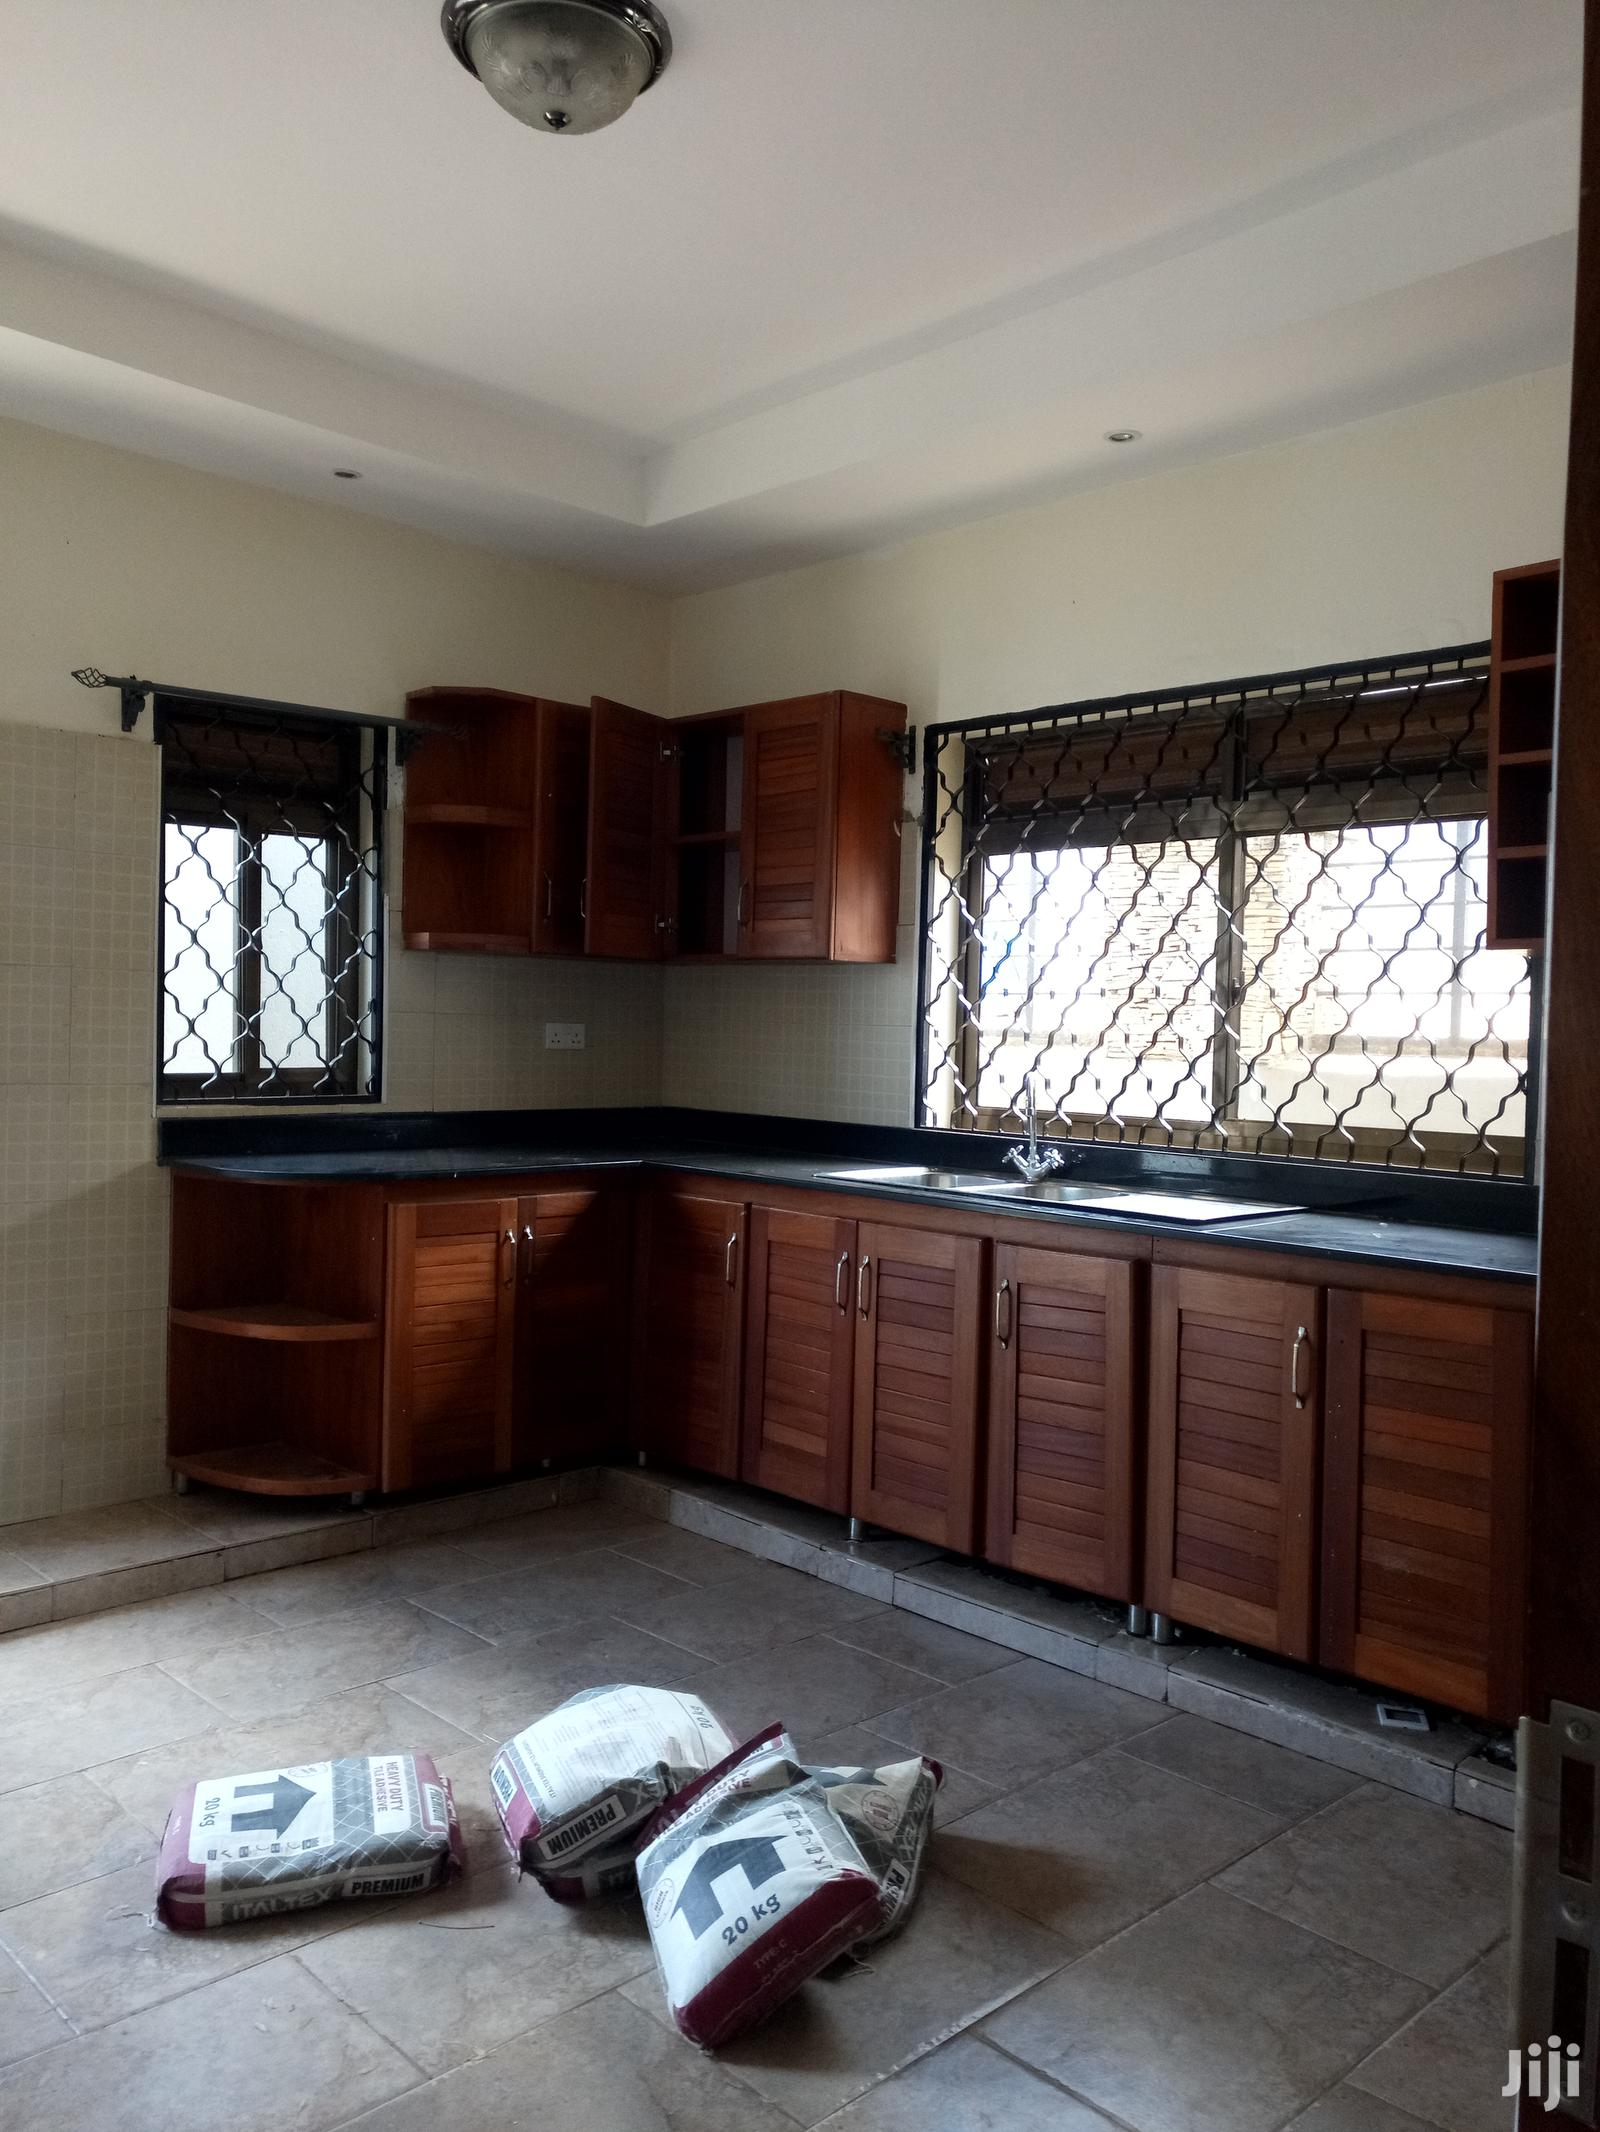 New Three Bedroom House In Kira For Sale | Houses & Apartments For Sale for sale in Kampala, Central Region, Uganda